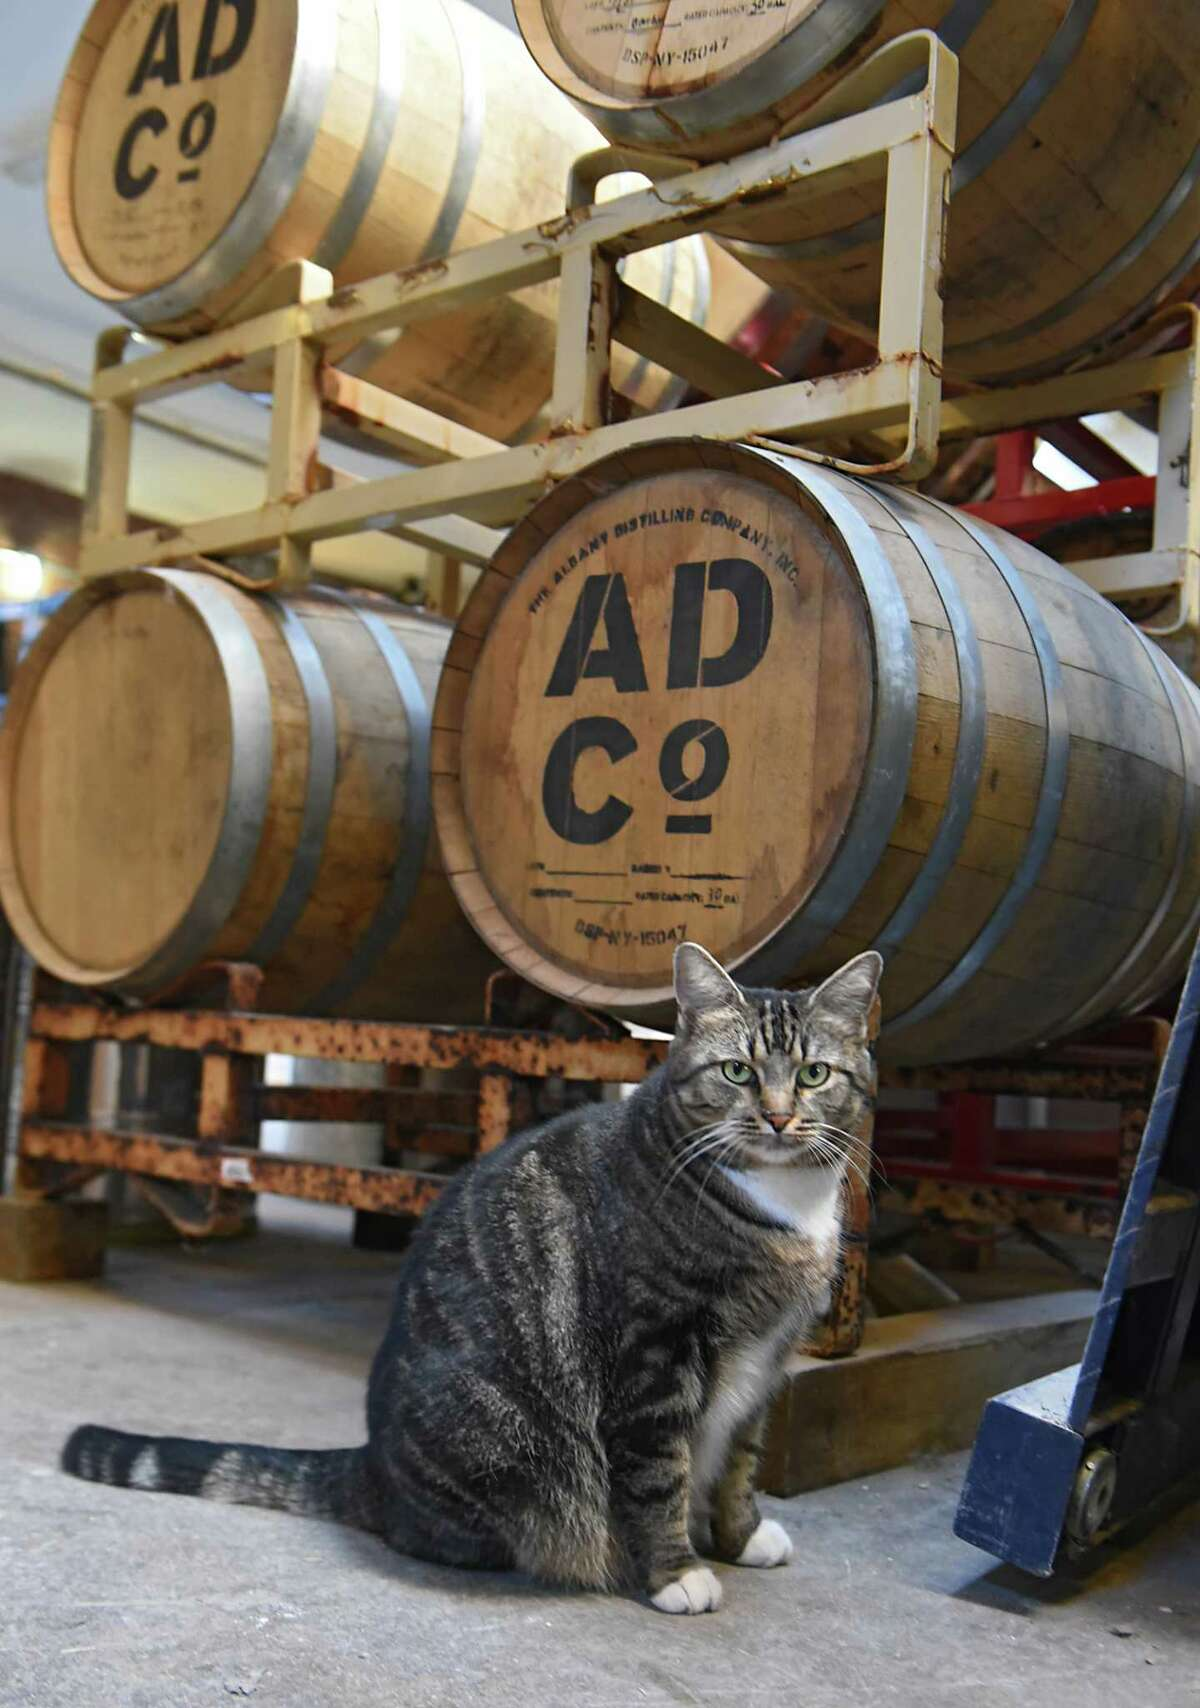 Montgomery the cat at the Albany Distilling Company on Thursday, Dec. 21, 2017 in Albany N.Y. (Lori Van Buren / Times Union)